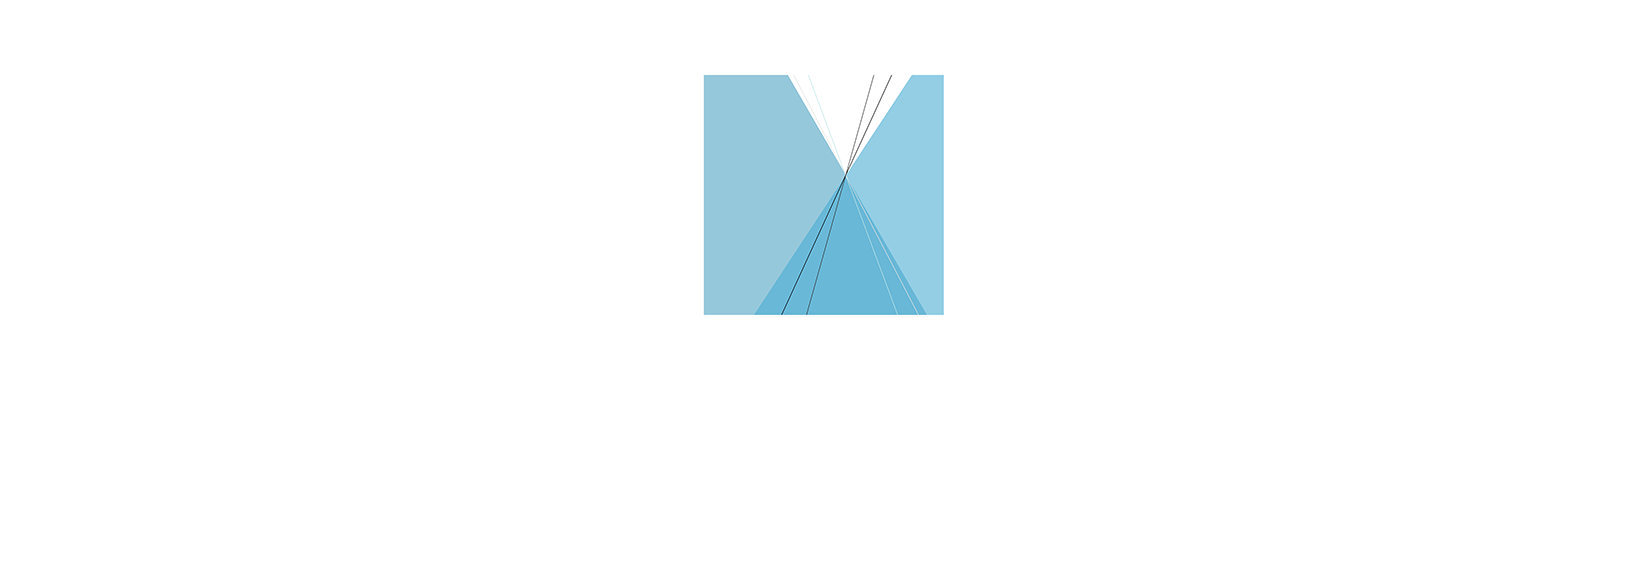 International Center for Dialogue and Peacebuilding